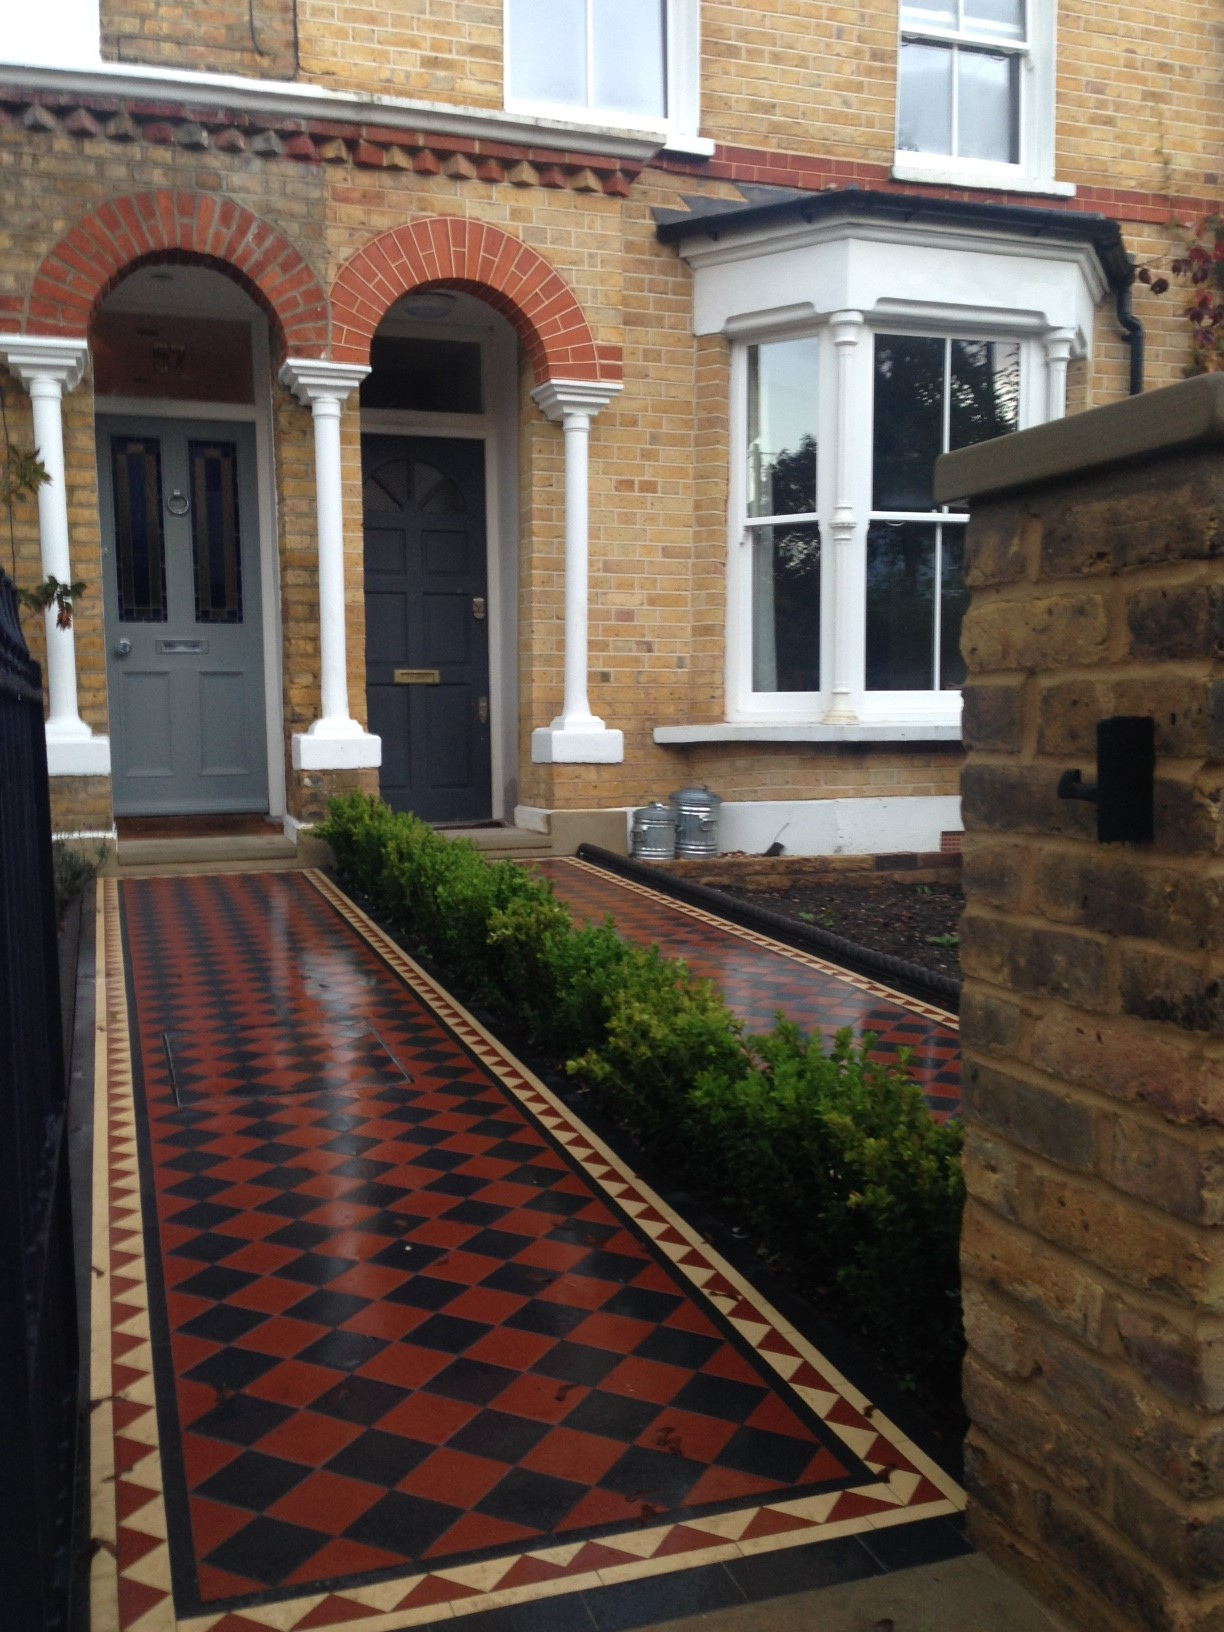 Brixton Herne Hill Victorian Mosaic Tile Path black and red tile with Yorkstone pier cap entrance stone and imperial yellow brick london stock wall (11)